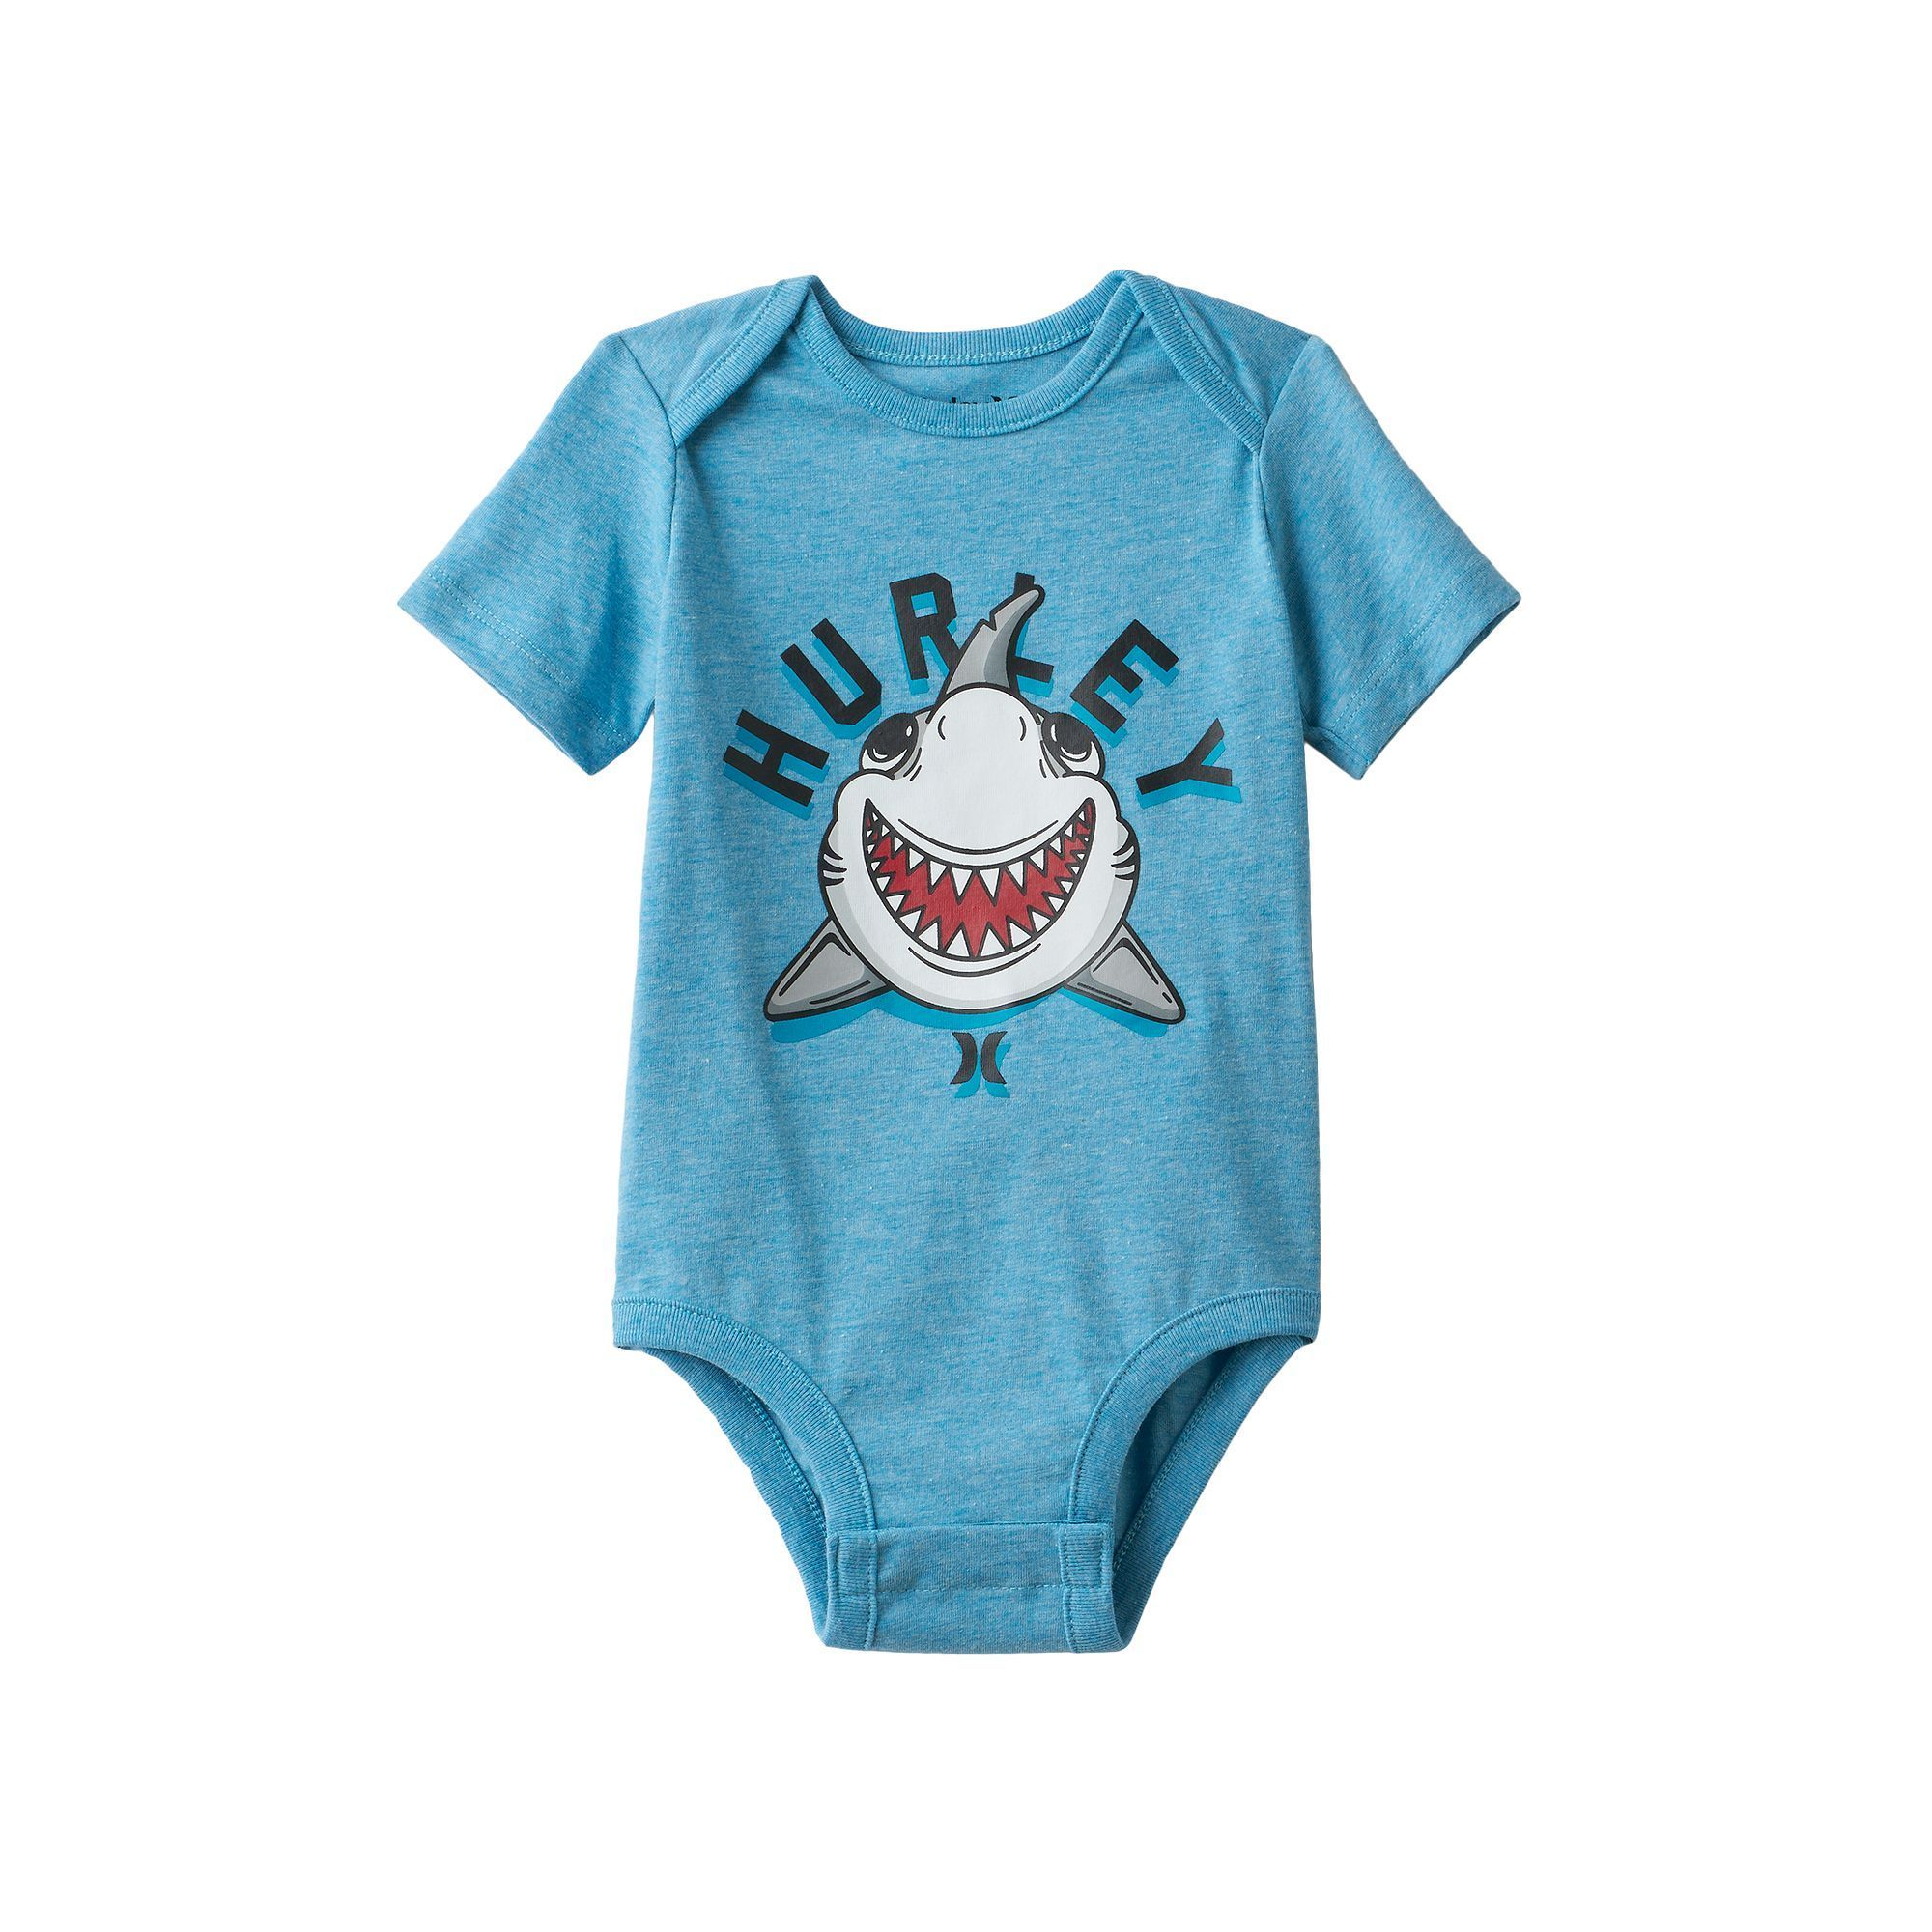 Baby Boy Hurley Shark Graphic Bodysuit Size 9 12MONTHS Turquoise